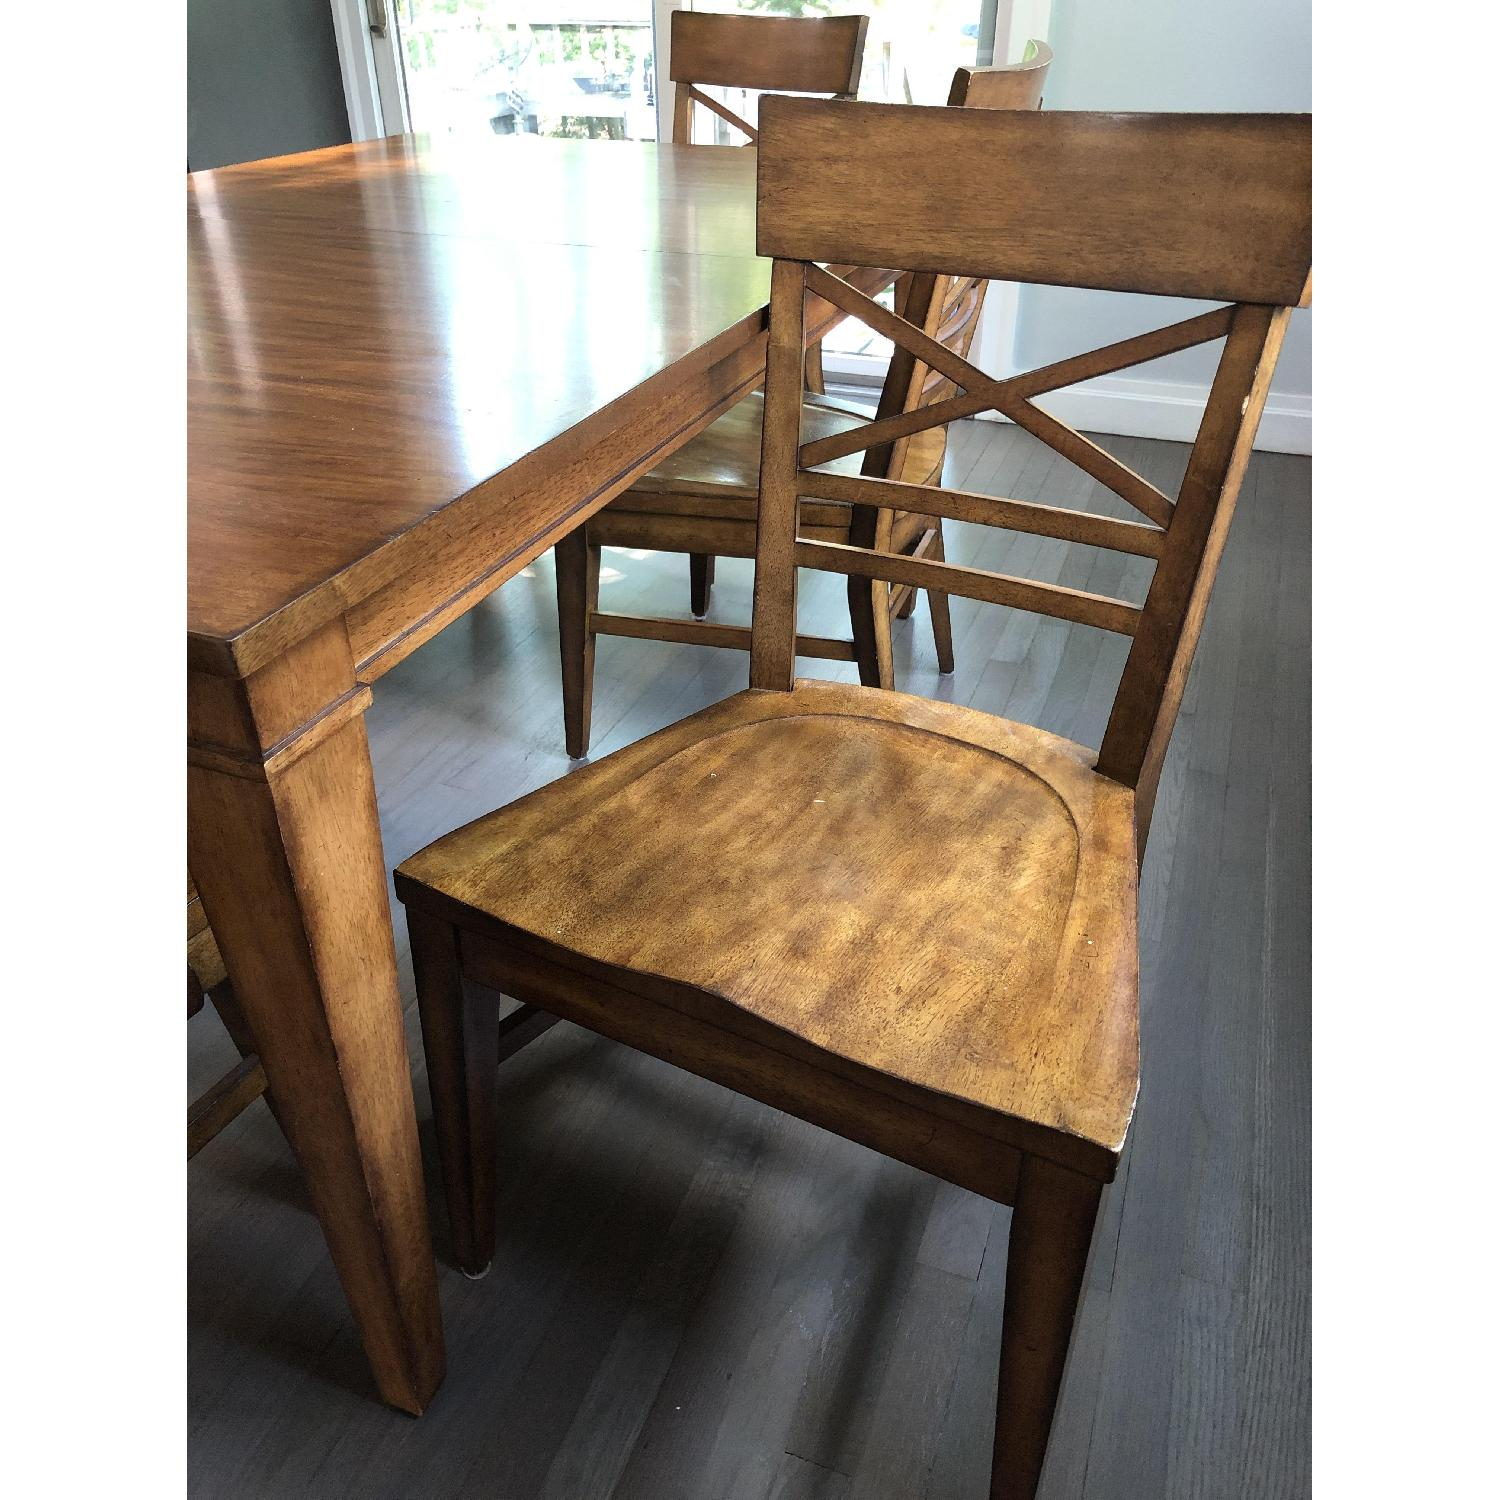 Ethan Allen Extension Dining Table w/ 6 Chairs - image-3